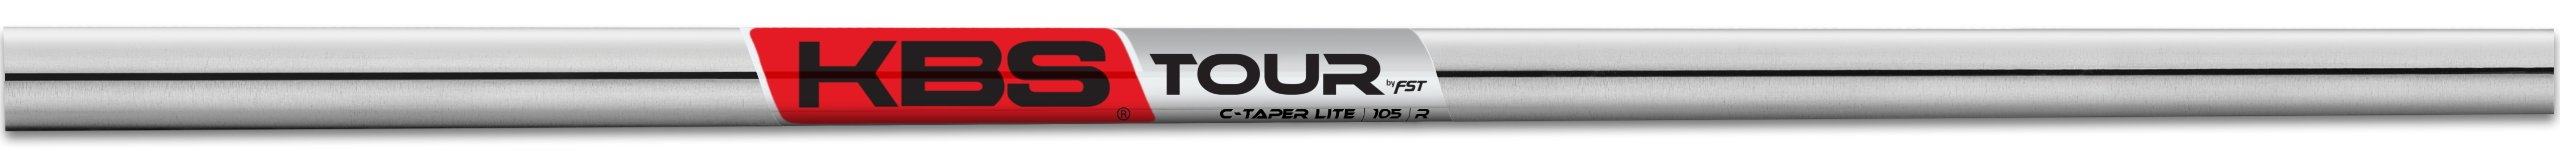 True Temper Men's C-Taper Lite Golf Club Shaft, 105gm, Steel, Regular, 4-PW